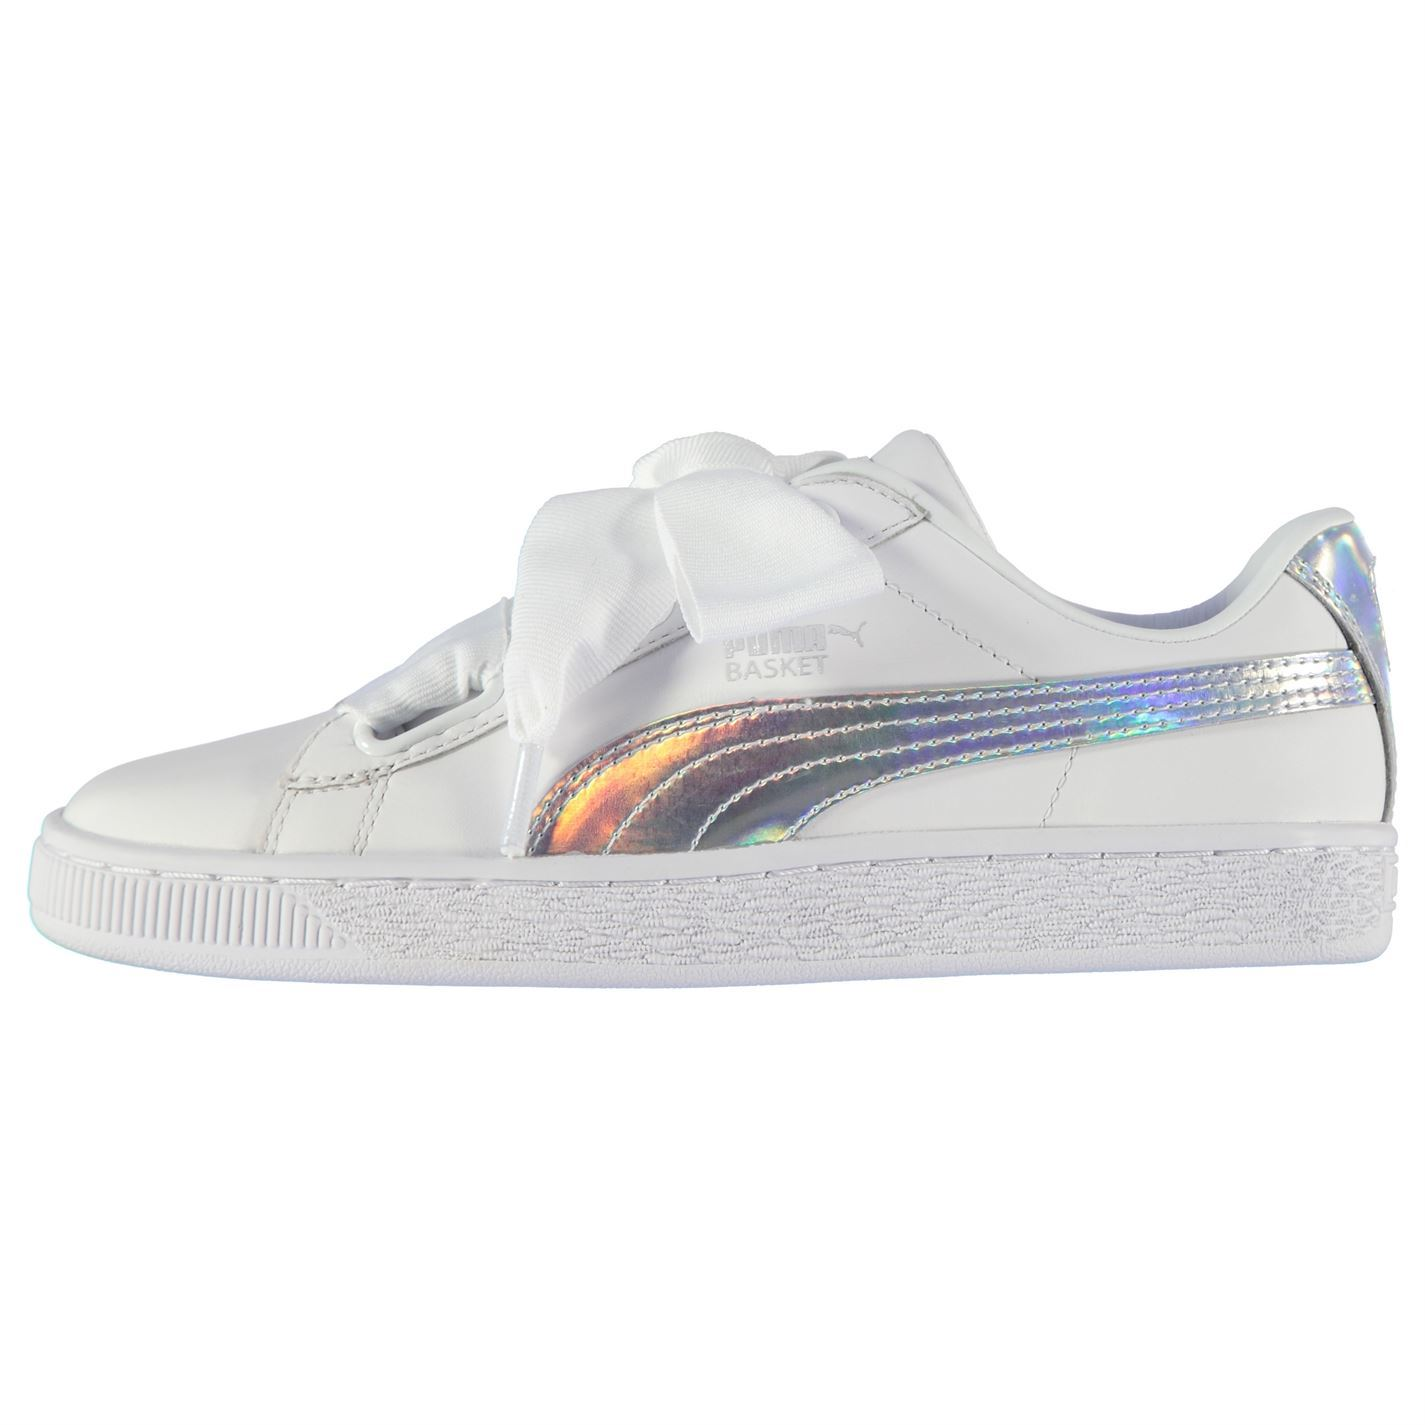 PUMA-Womens-Basket-Heart-Leather-Trainers-Lace-Up-Shoes-Padded-Collar